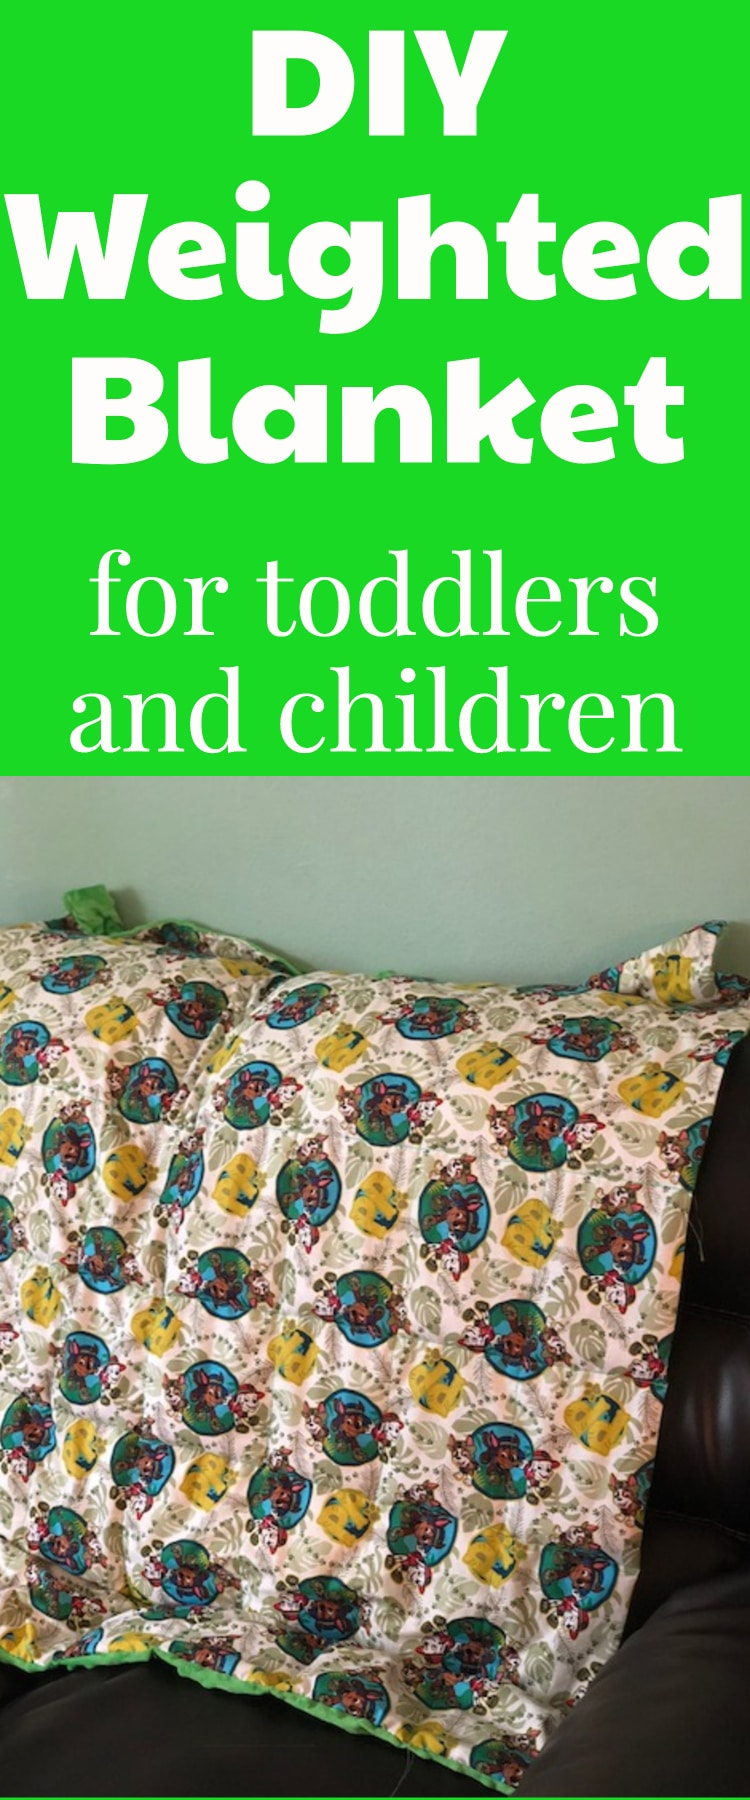 Diy Weighted Blanket For Toddlers Easily Adaptable For Older Children